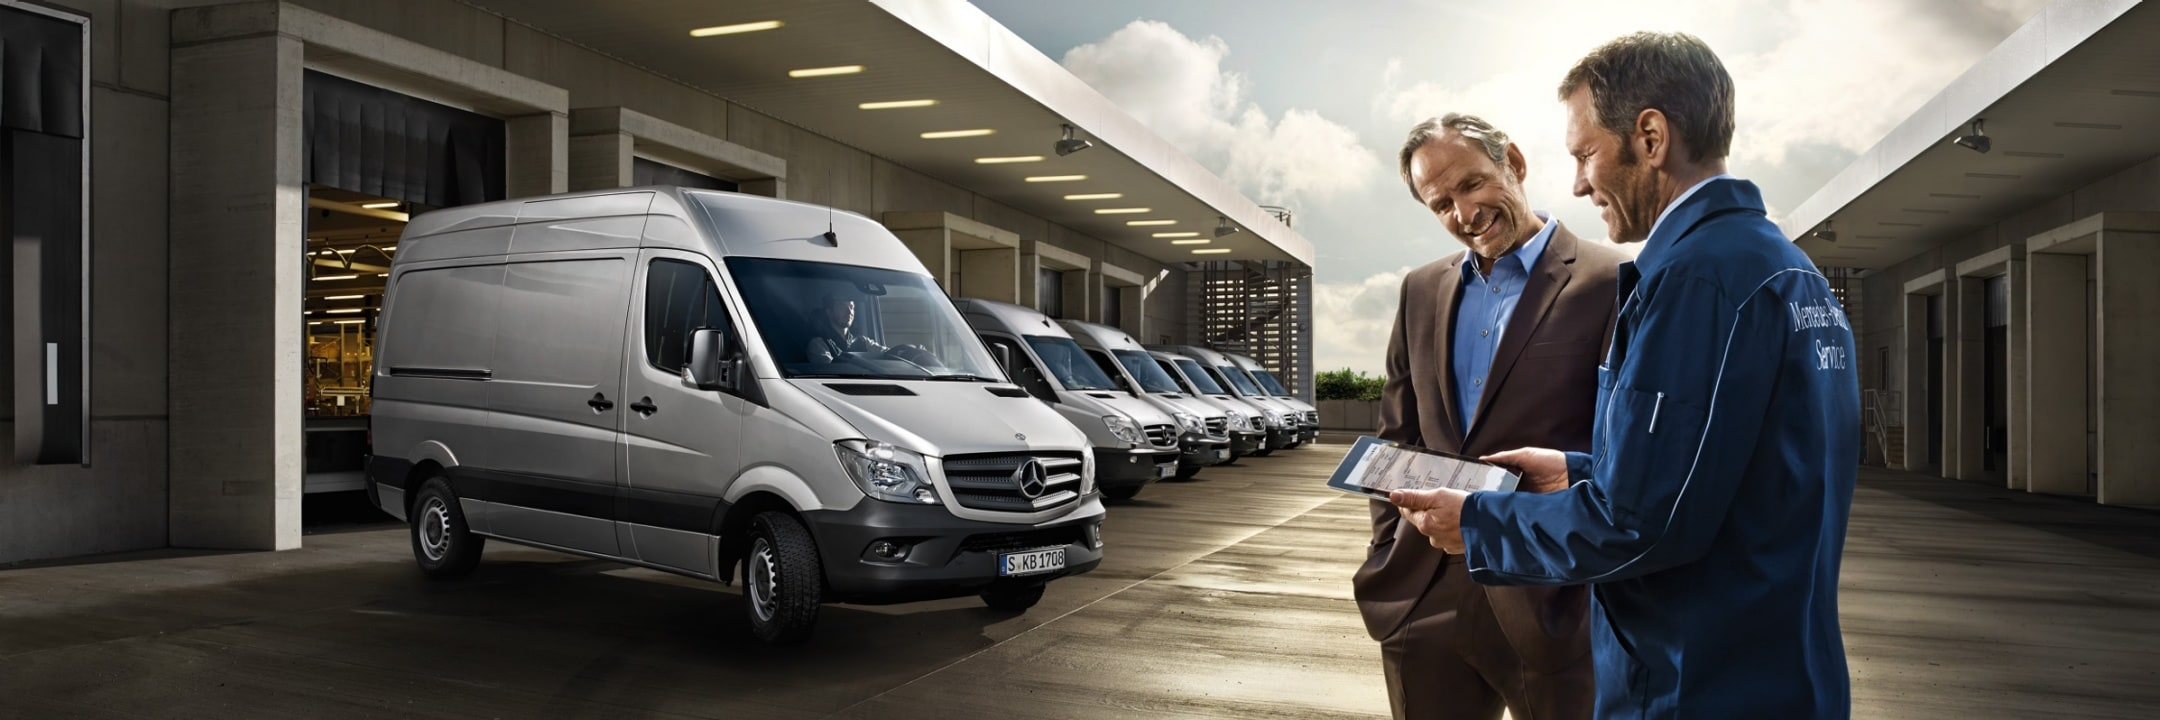 Contact Mercedes-Benz, Sprinter